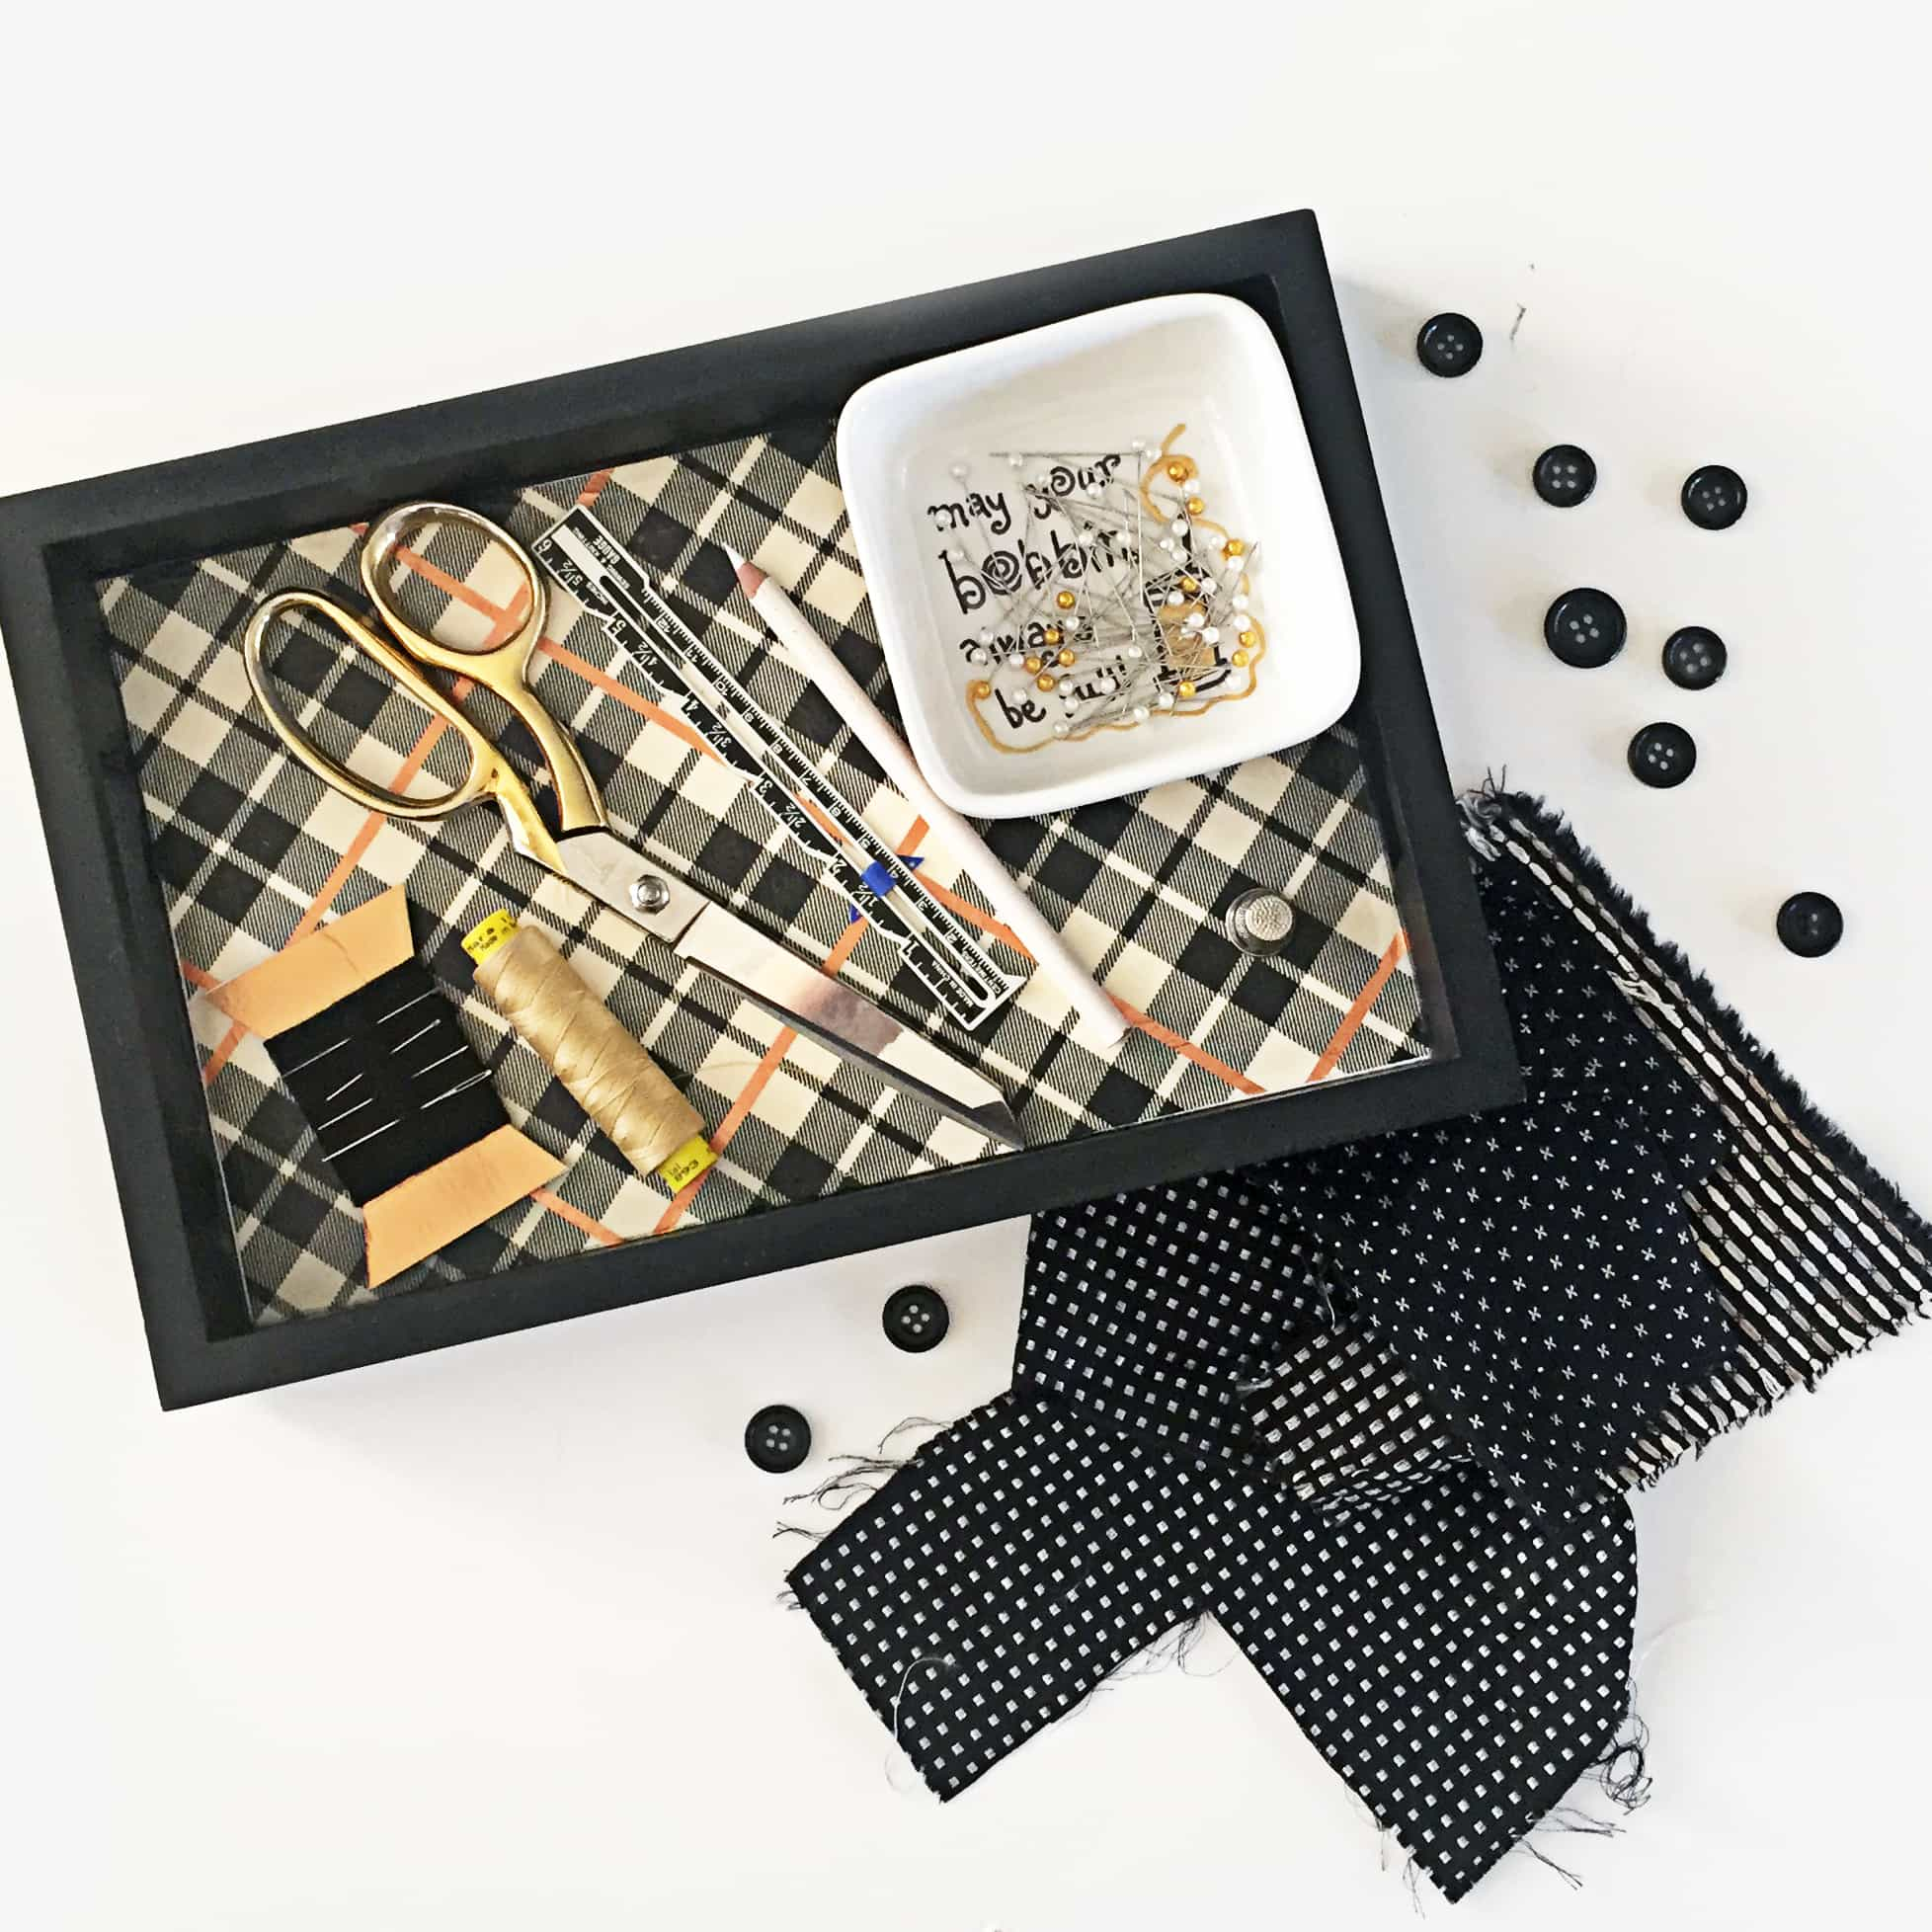 DIY Sewing Tray – with Pin and Needle Holders